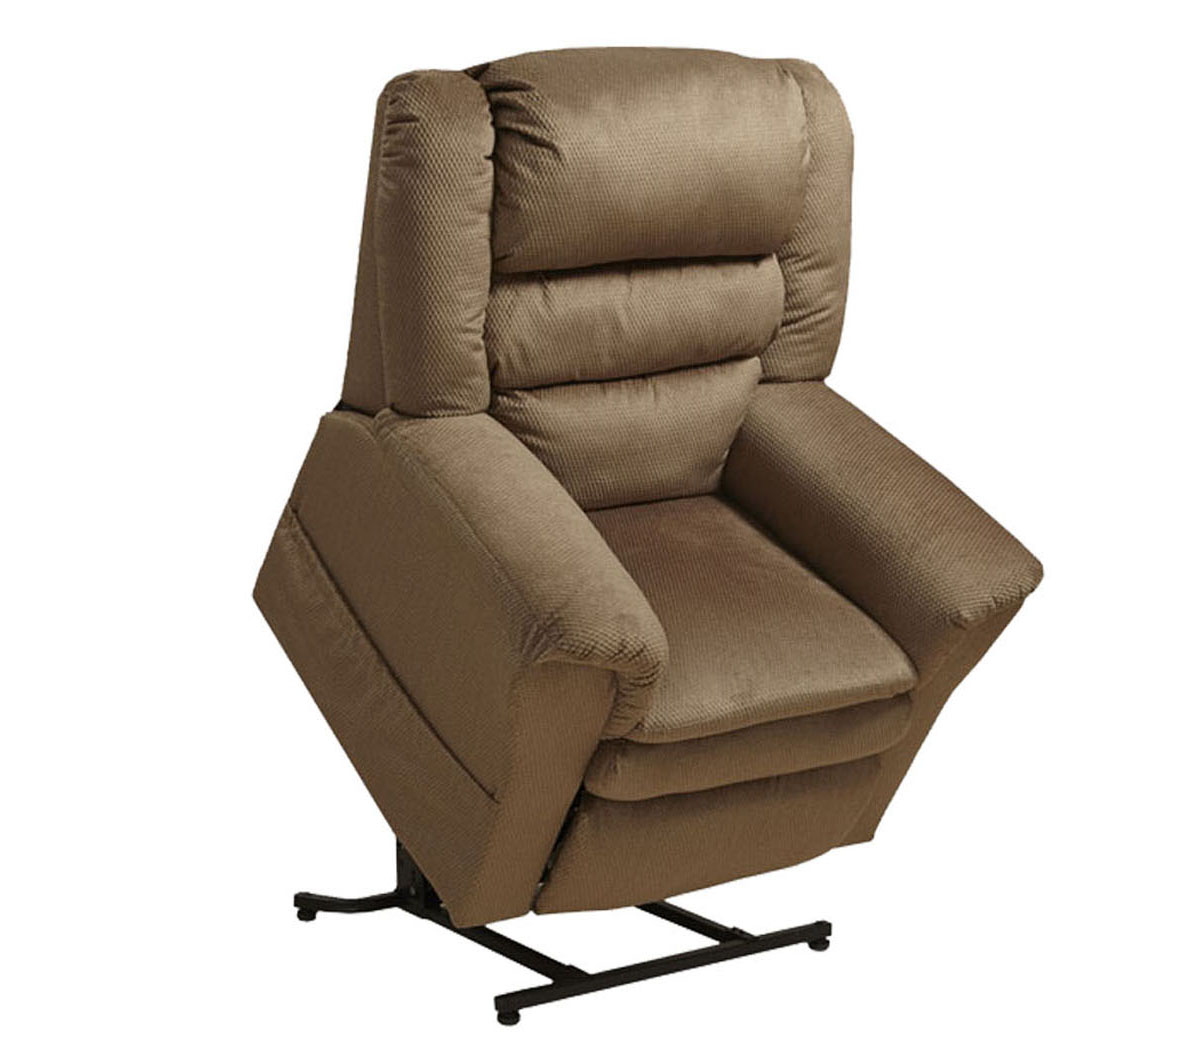 catnapper preston power lift chair recliner comfortfirs